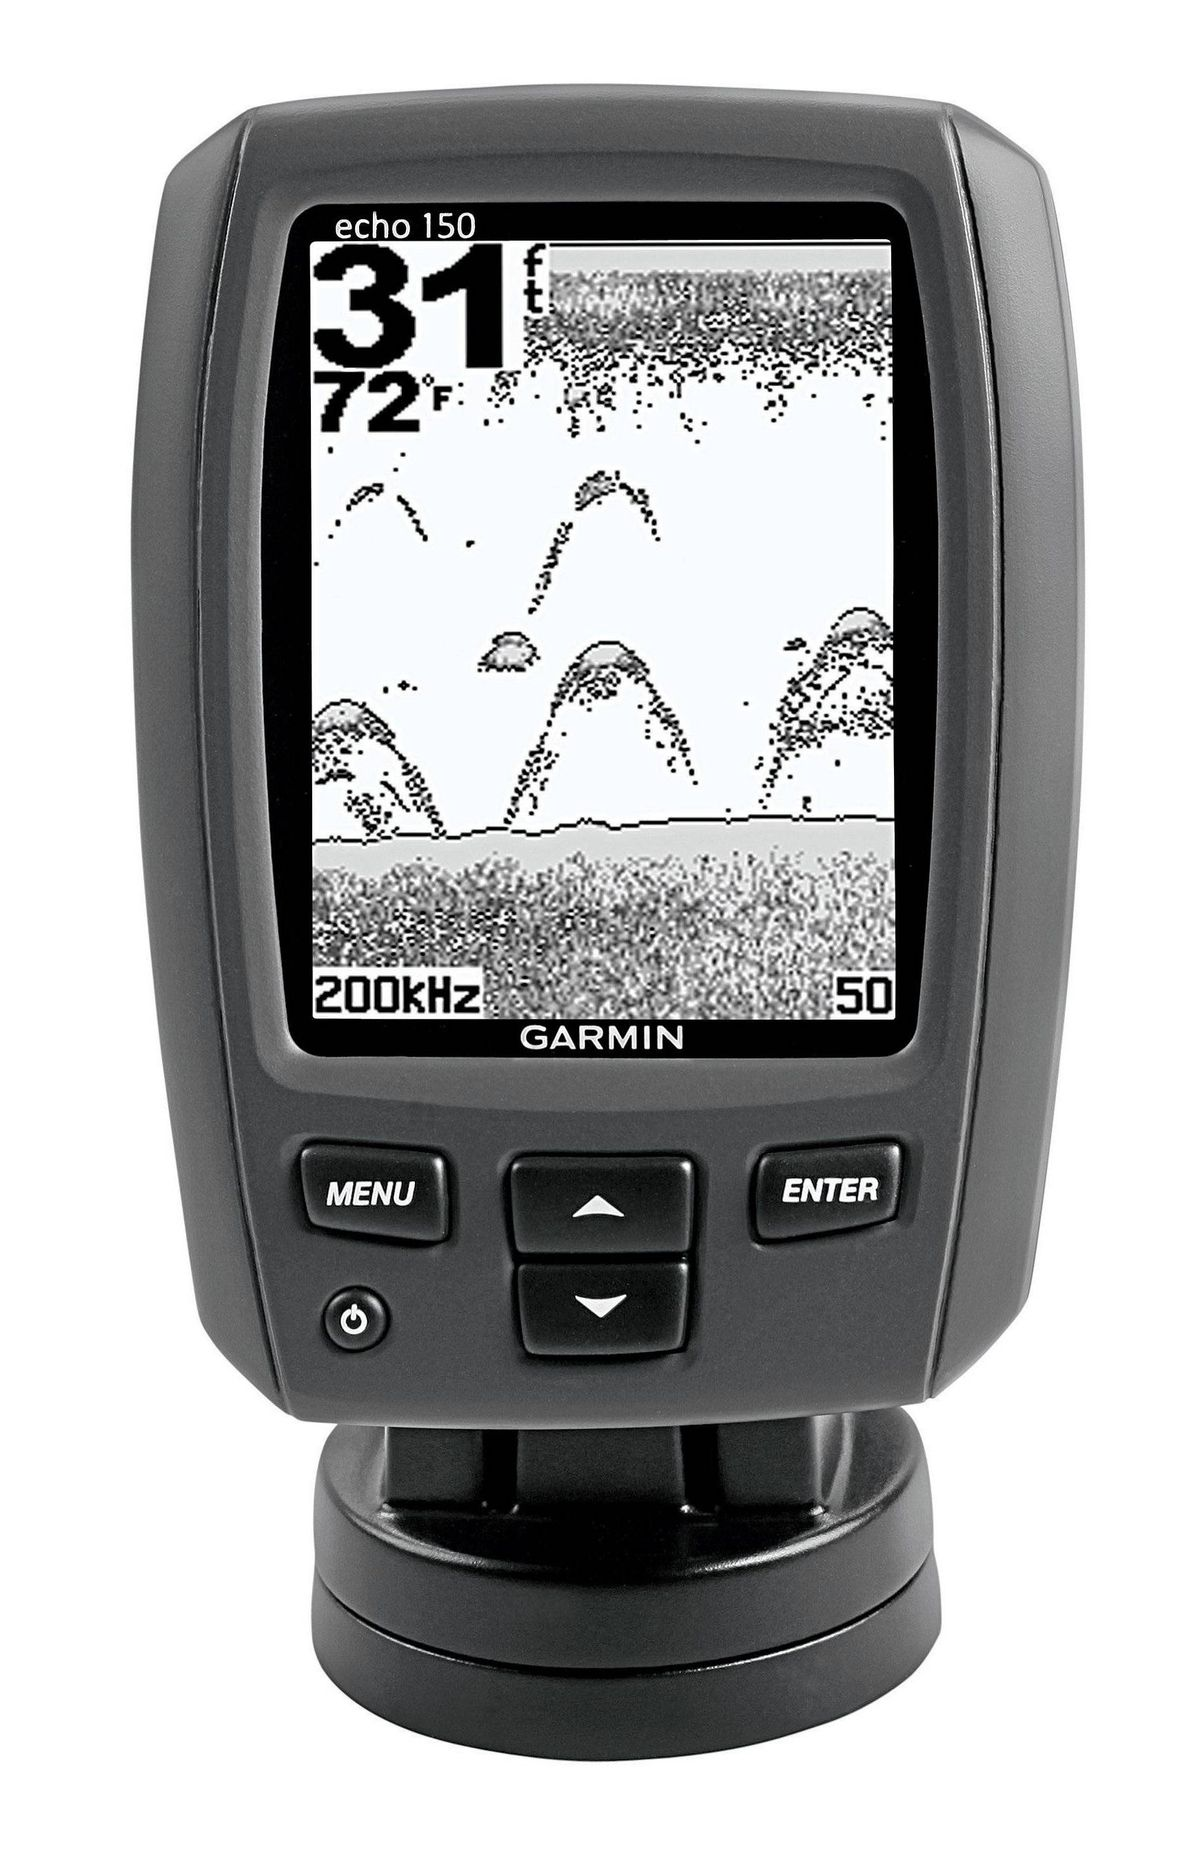 An easier catch Tired of telling tales of the one that got away? Home in on your next catch with Garmin's new echo 150 Fishfinder. The compact dual-beam sonar trolls for trout, pickerel and other freshwater fish in depths of up to 395 metres, displaying the results on an easy-to-read grayscale screen. In shallow water, a viewing range of up to 120 degrees gives you an expanded sightline well beyond the sides of your boat. $99.99 (U.S.), basspro.com